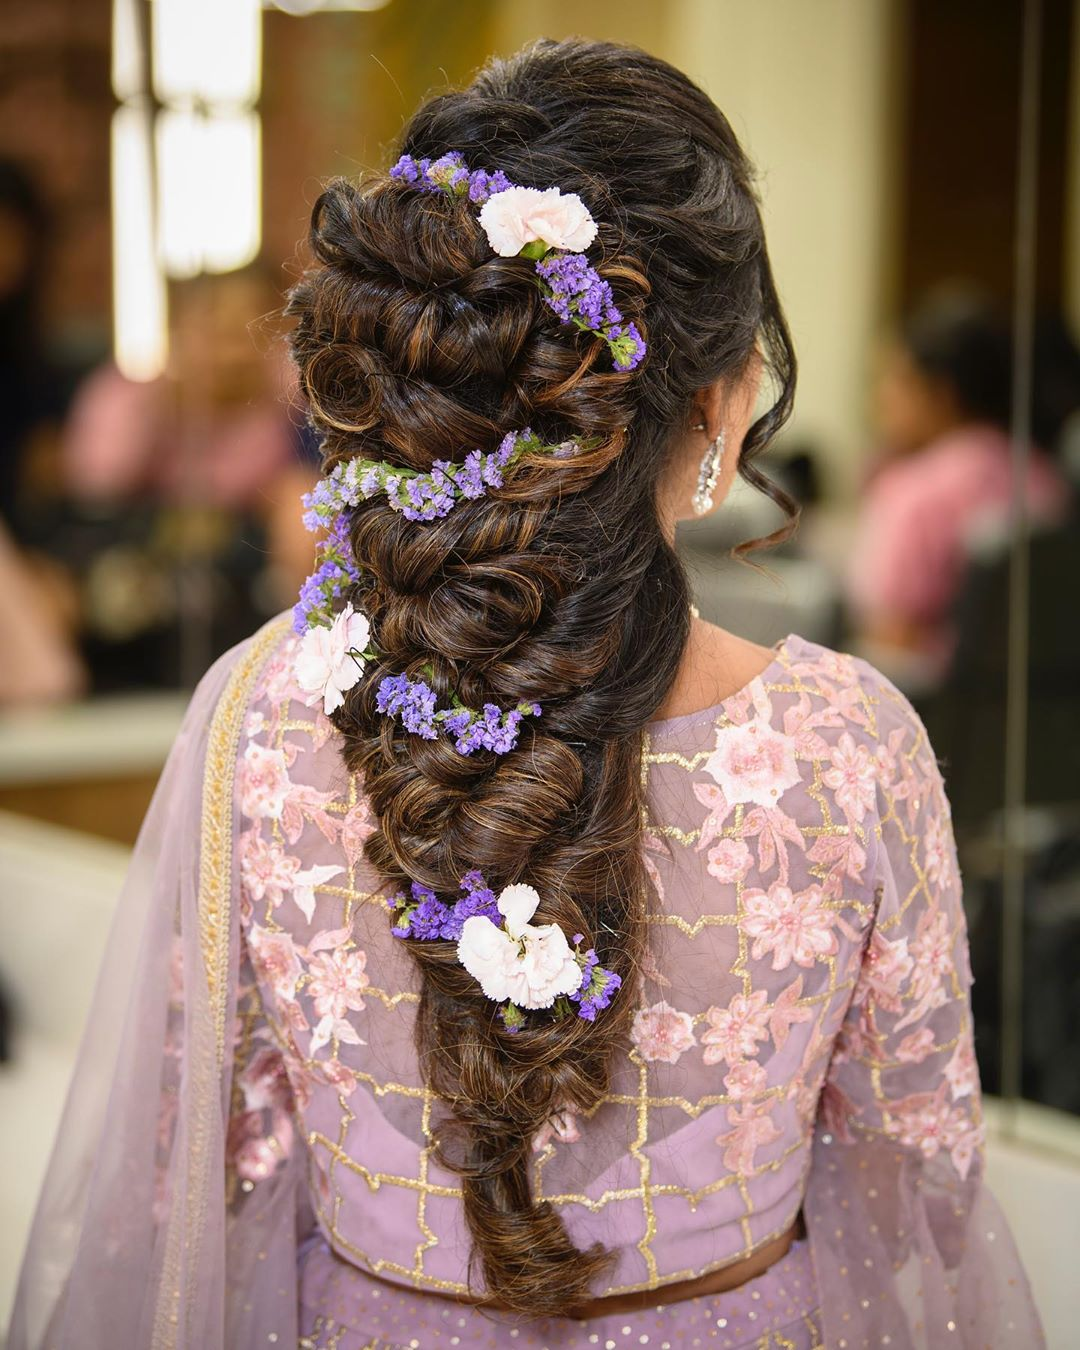 Lavender magic: Floral hairstyles for Haldi and Mehendi Ceremonies!a